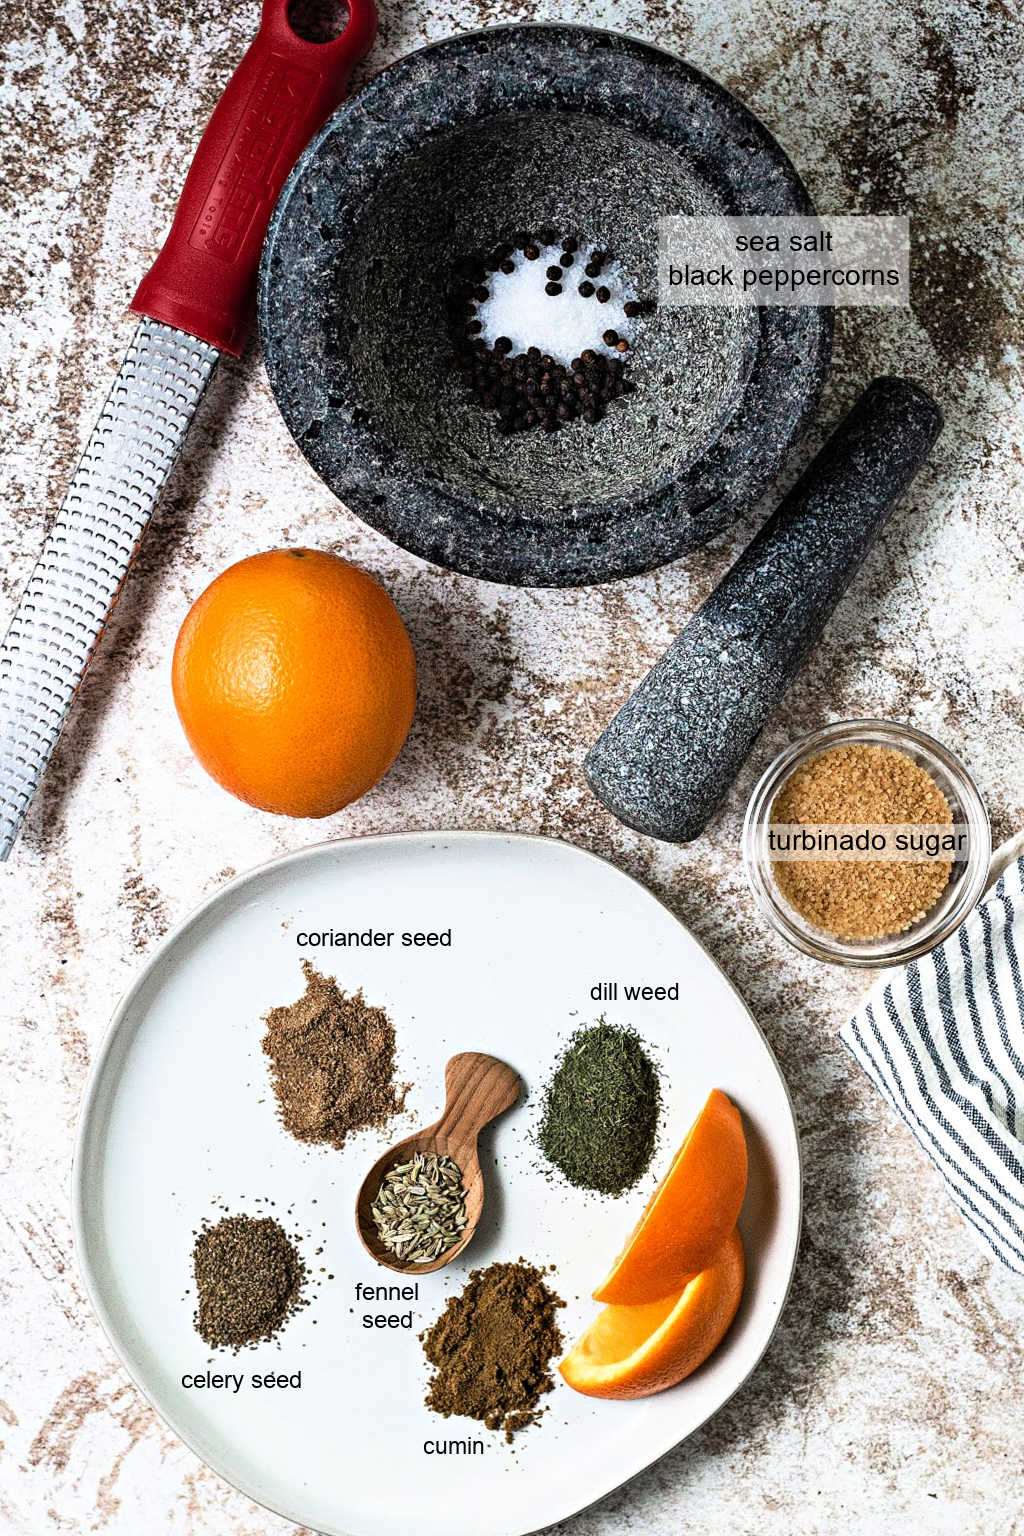 ingredients for salmon rub on a table with a mortar and pestle.